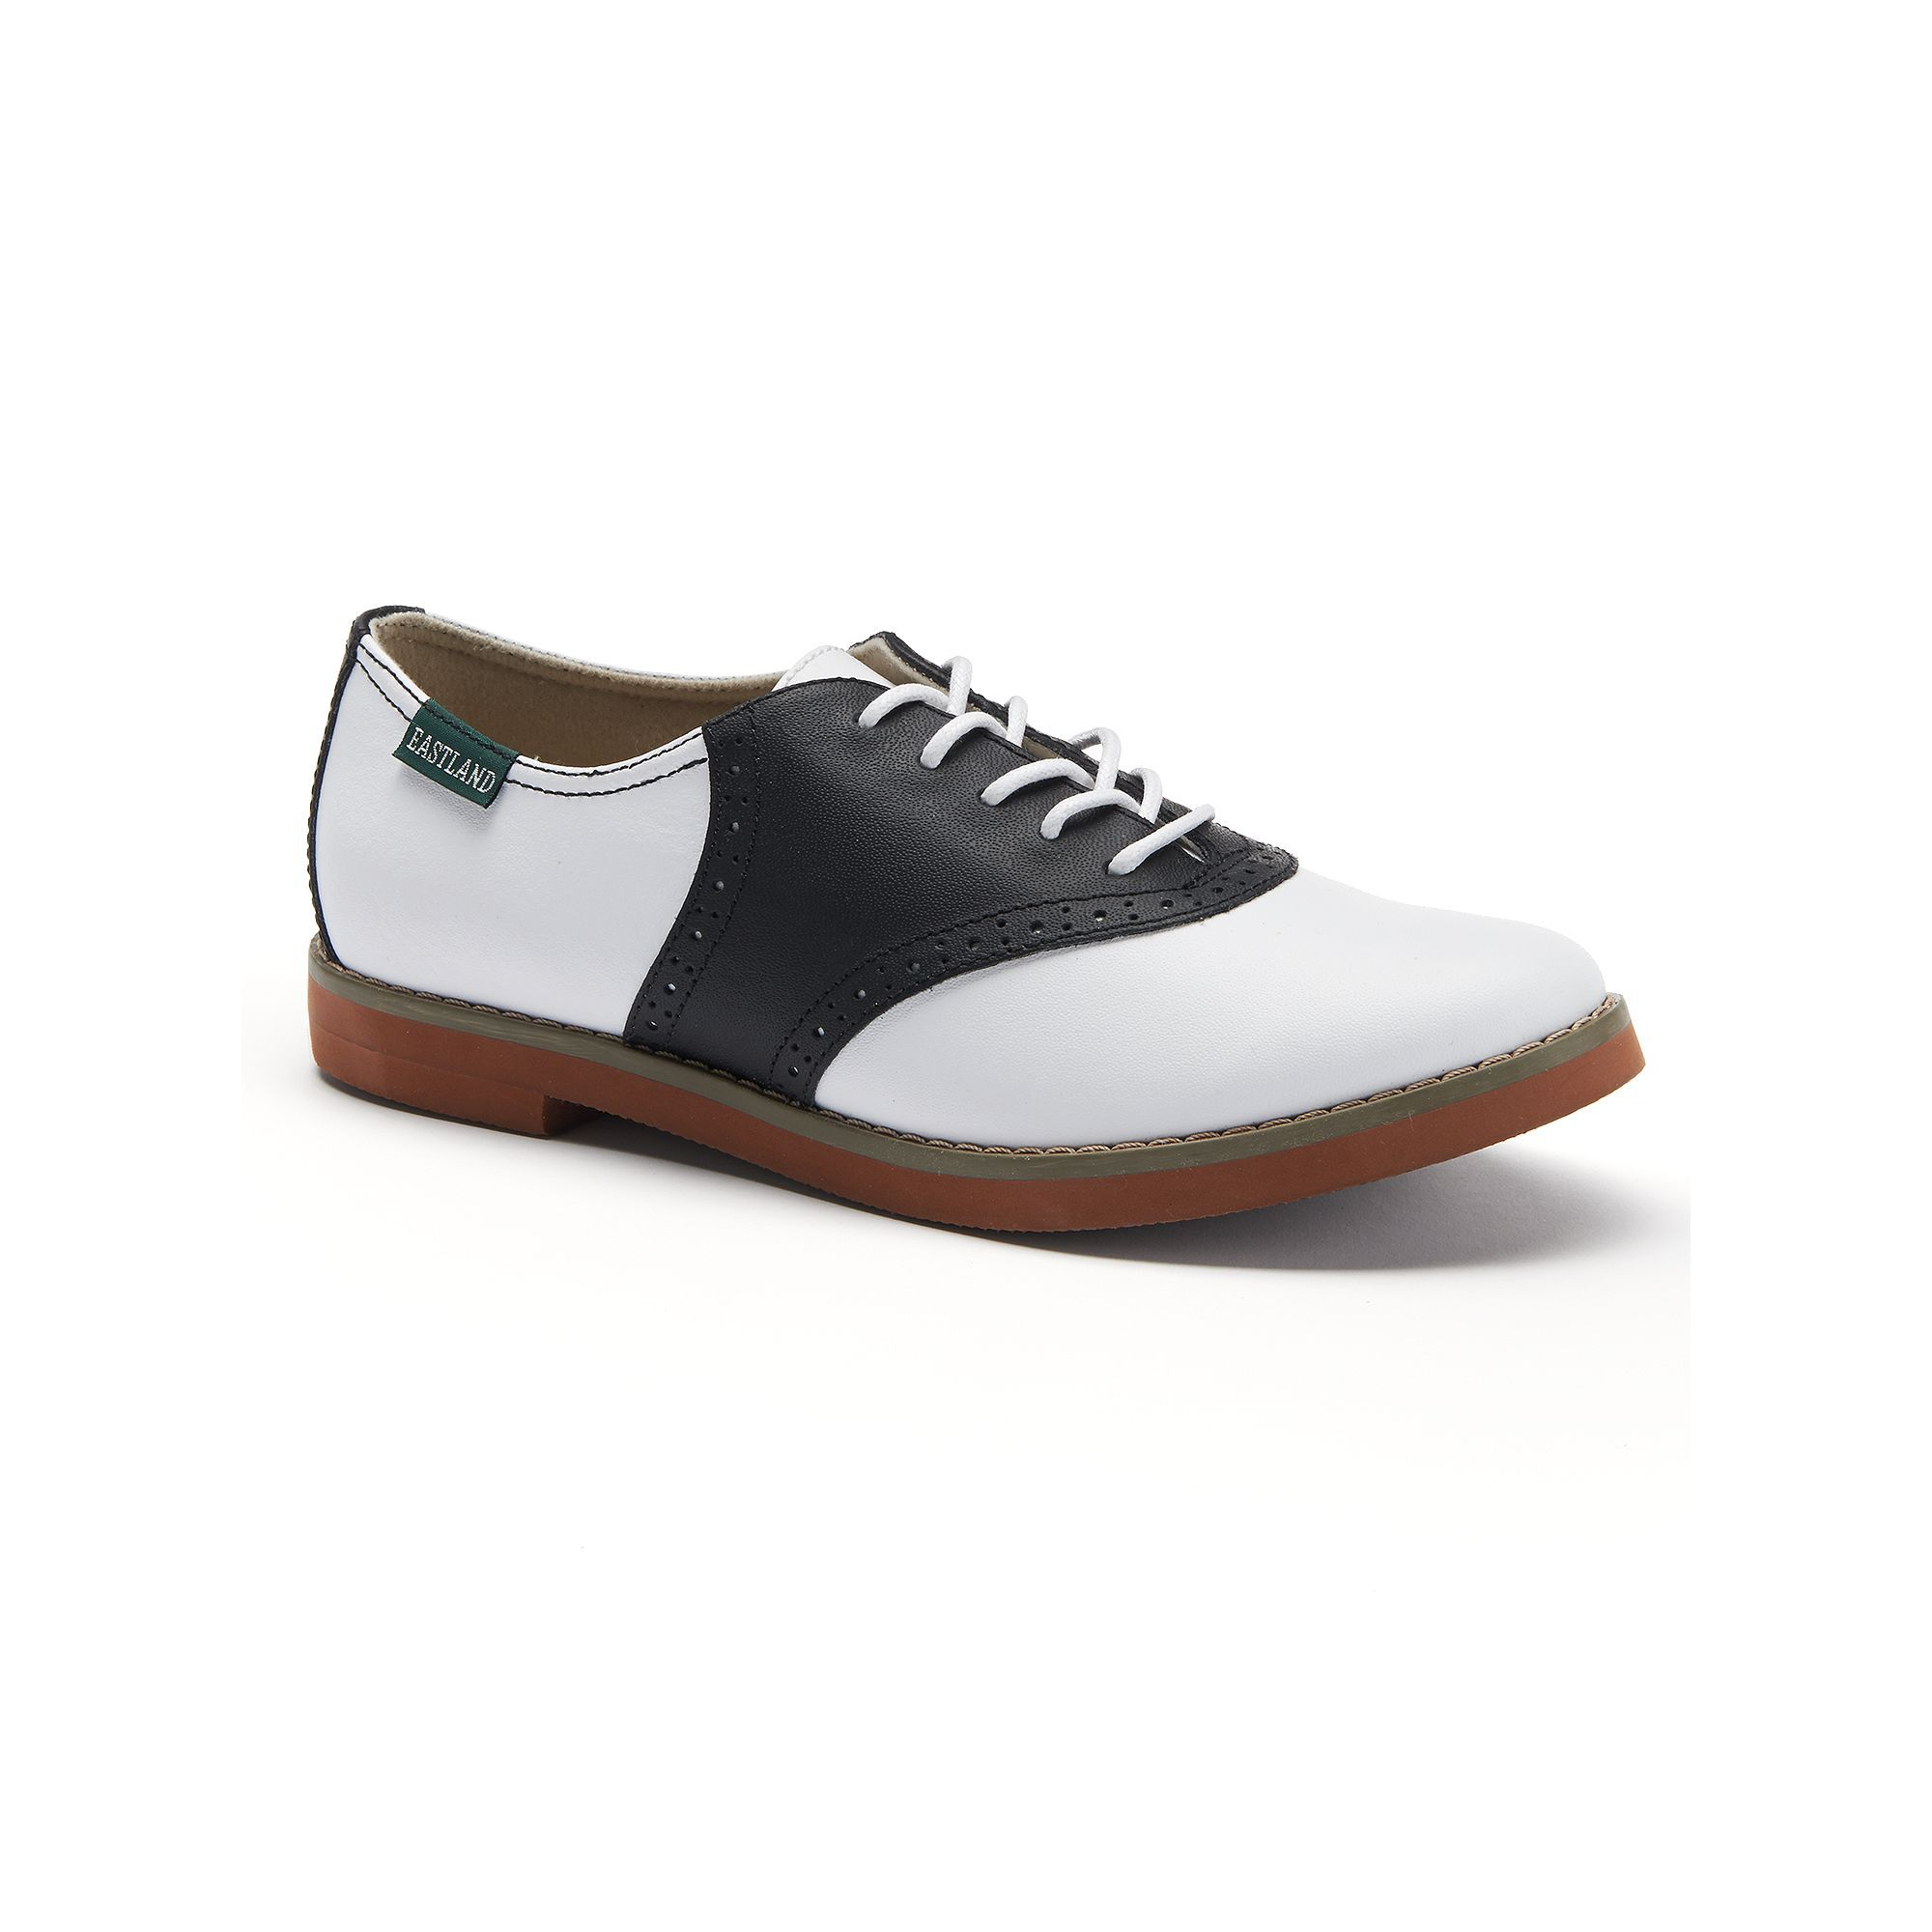 Eastland Sadie Saddle Women's Oxford Shoes, Grey (Charcoal)